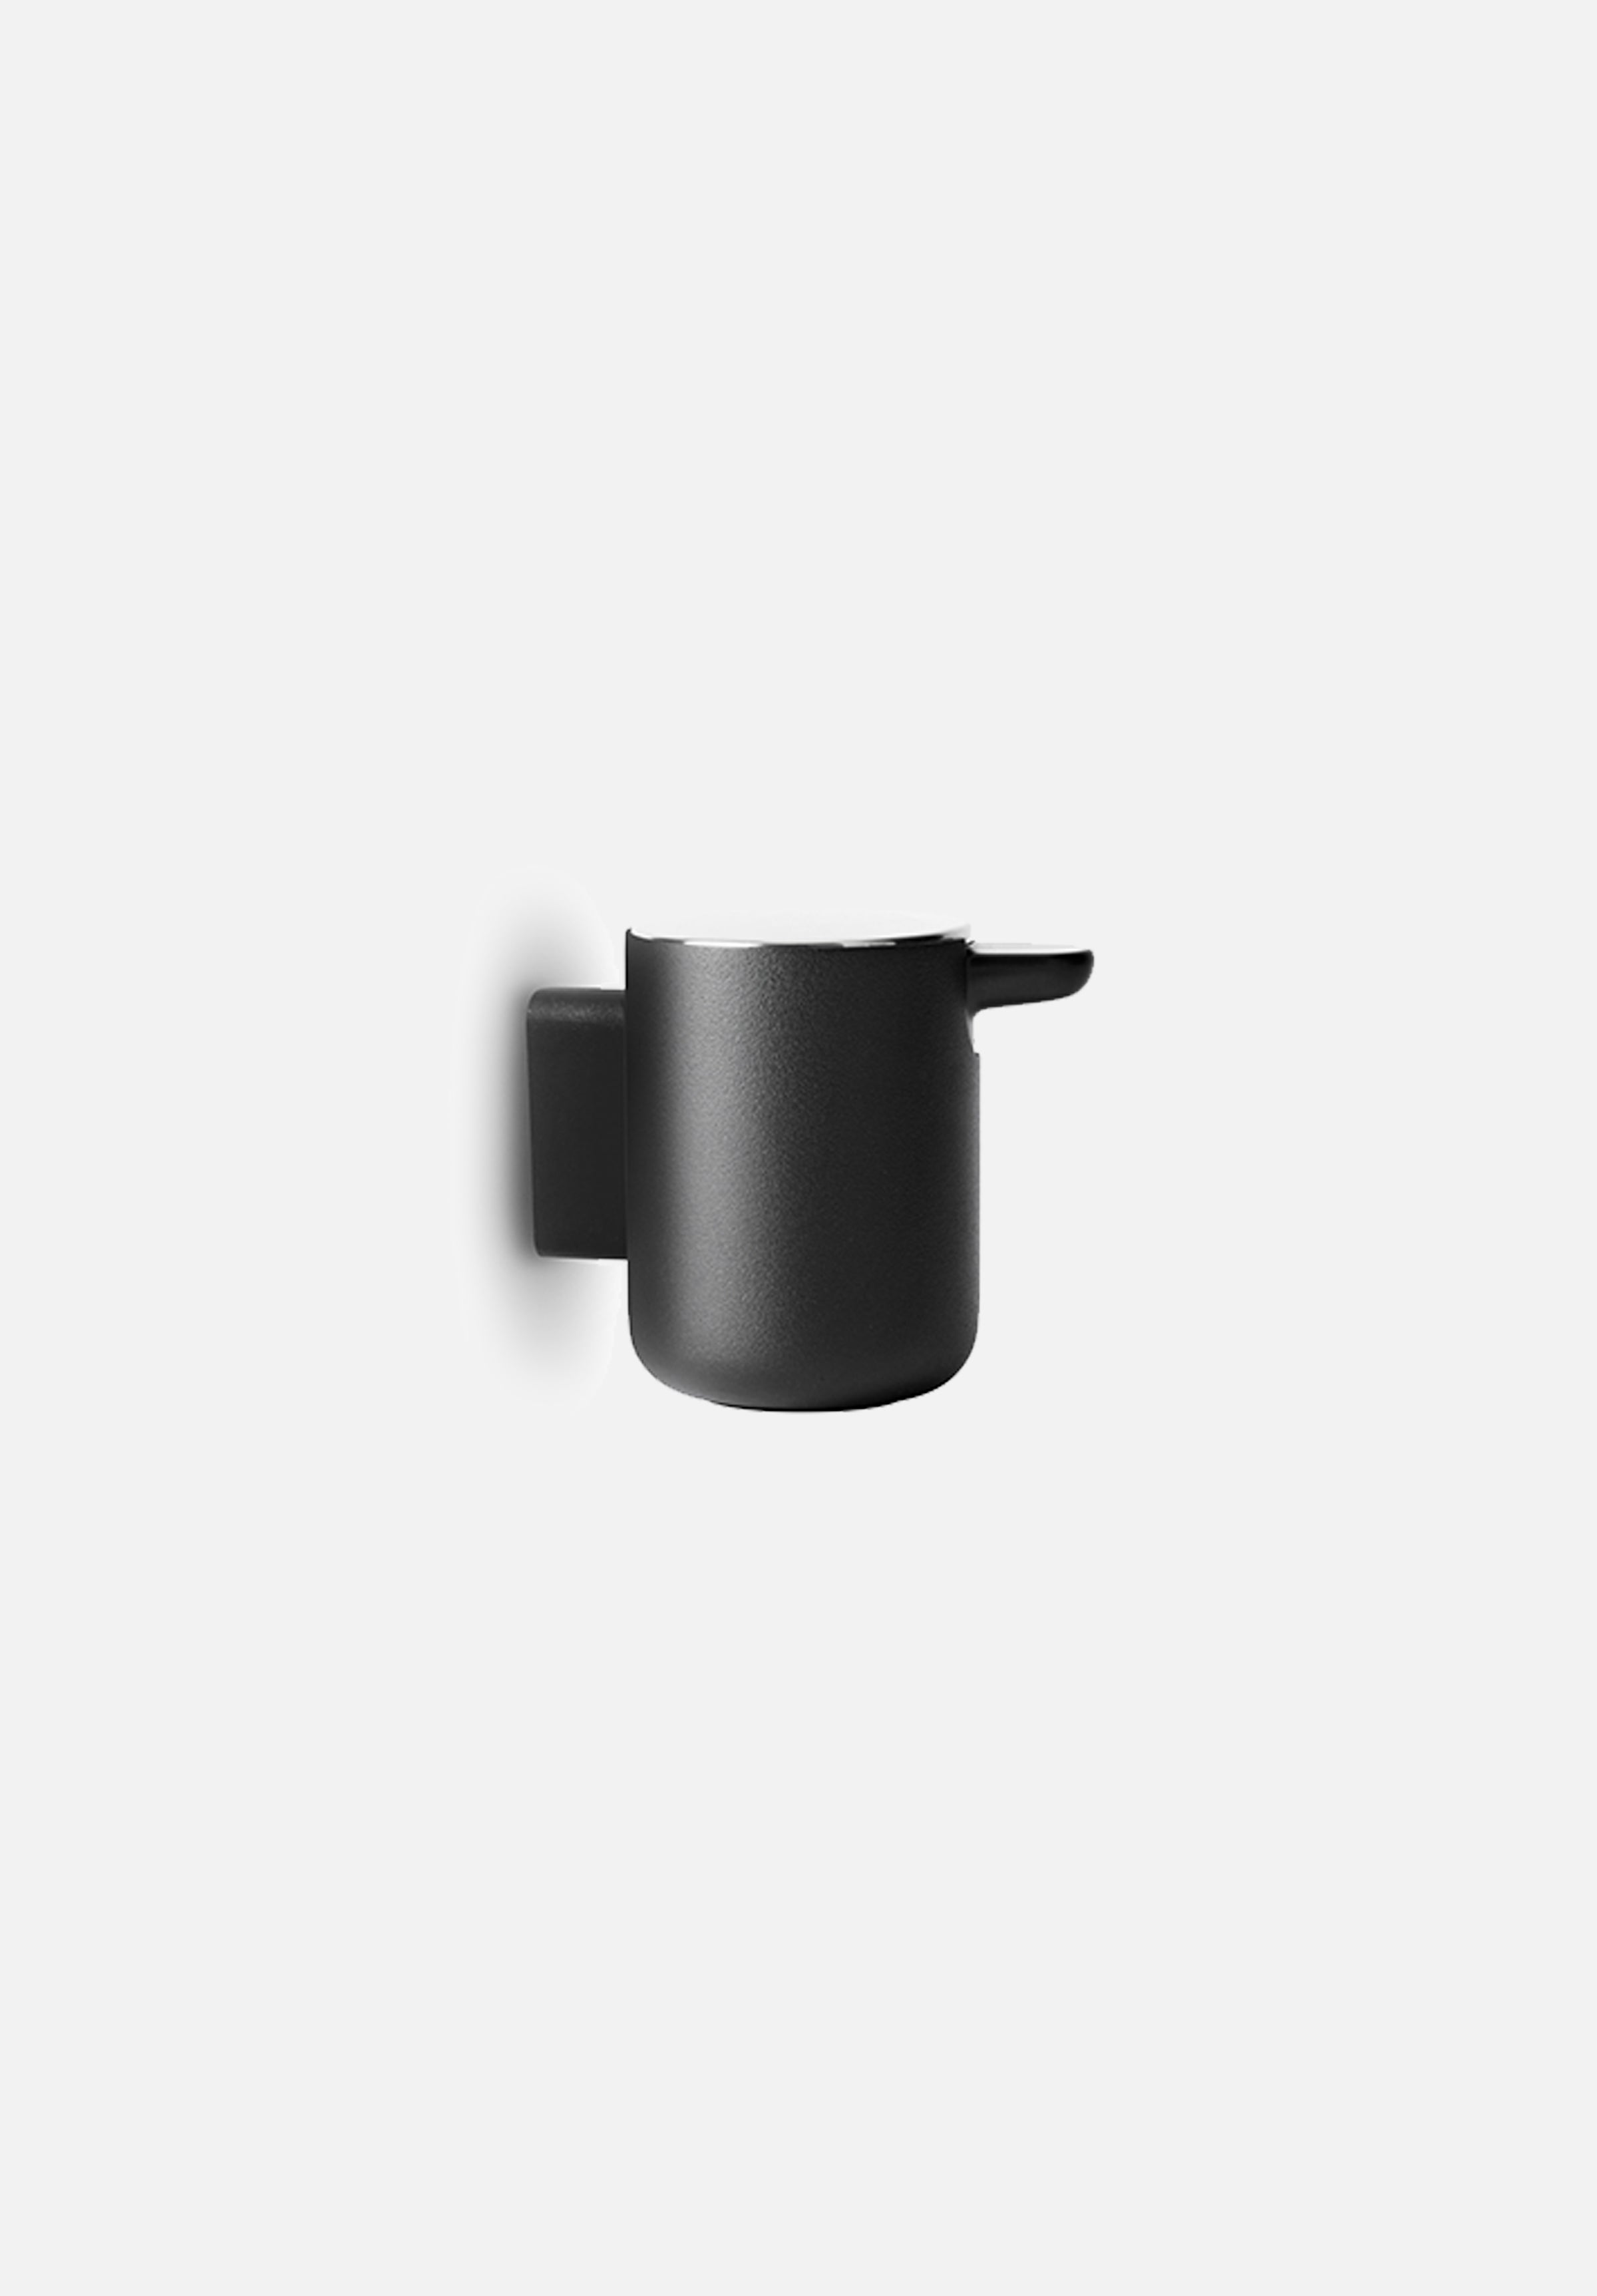 Soap Pump-Norm Architects-Menu-Black-Wall Mounted-Average